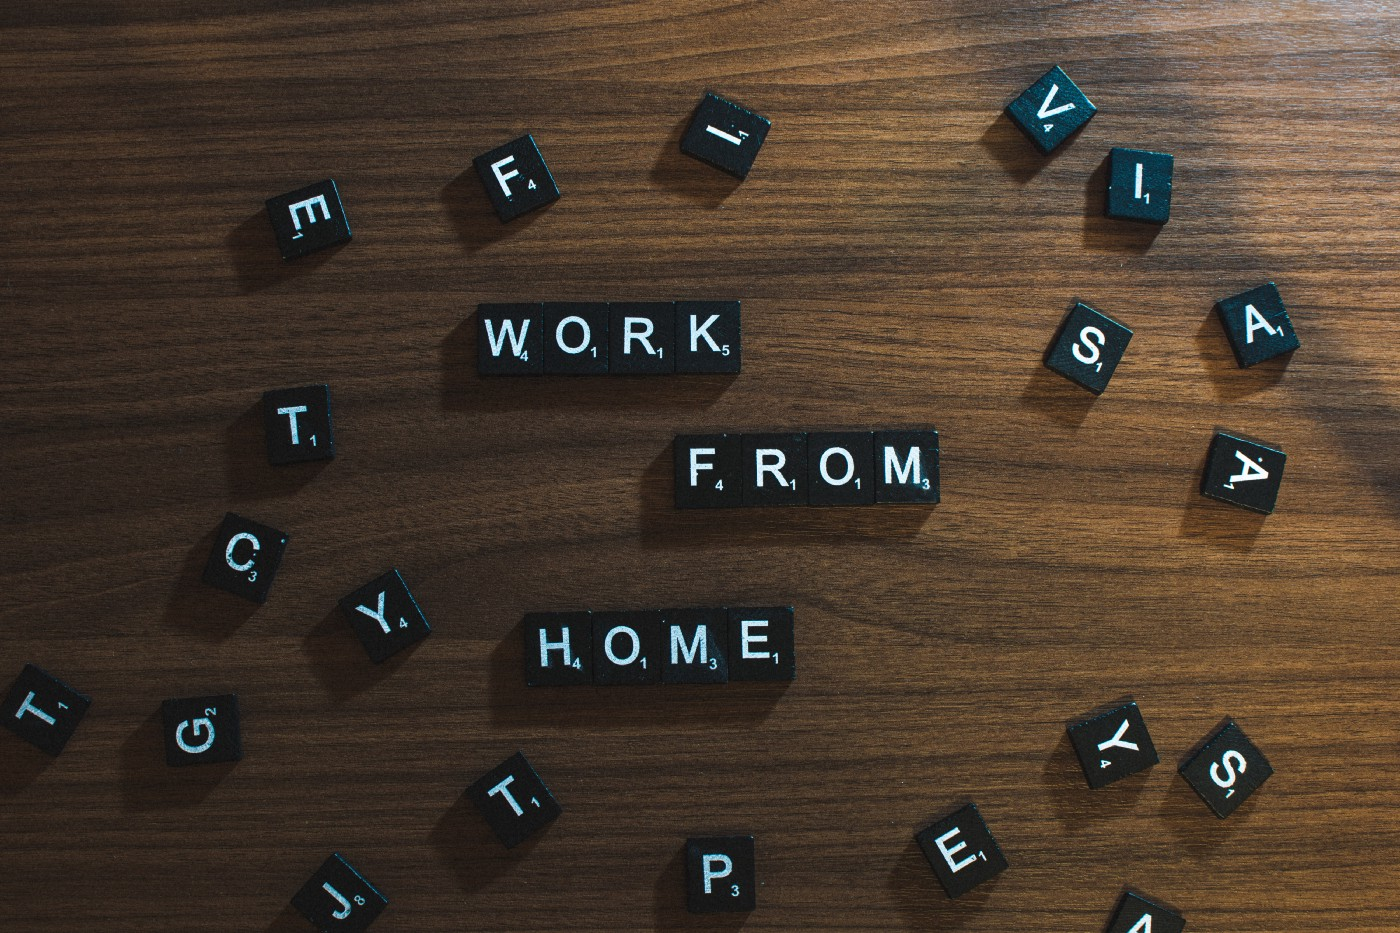 """Scrabble letters on a table. They spell out """"Work from home."""""""